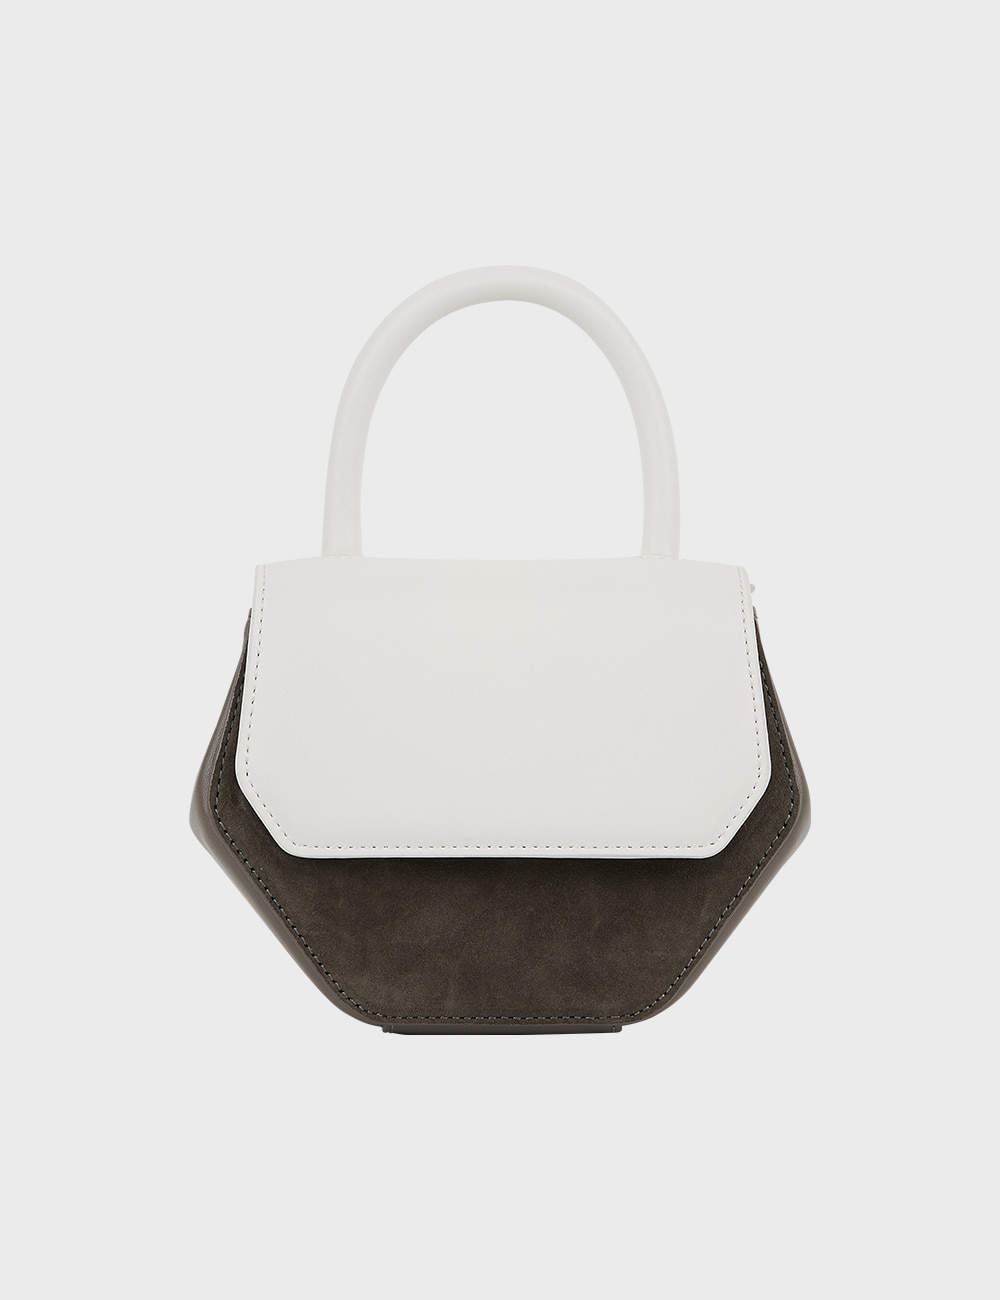 MAISON246,246 MAGOT COMBI SMALL BAG - WHITE GREY,No.246